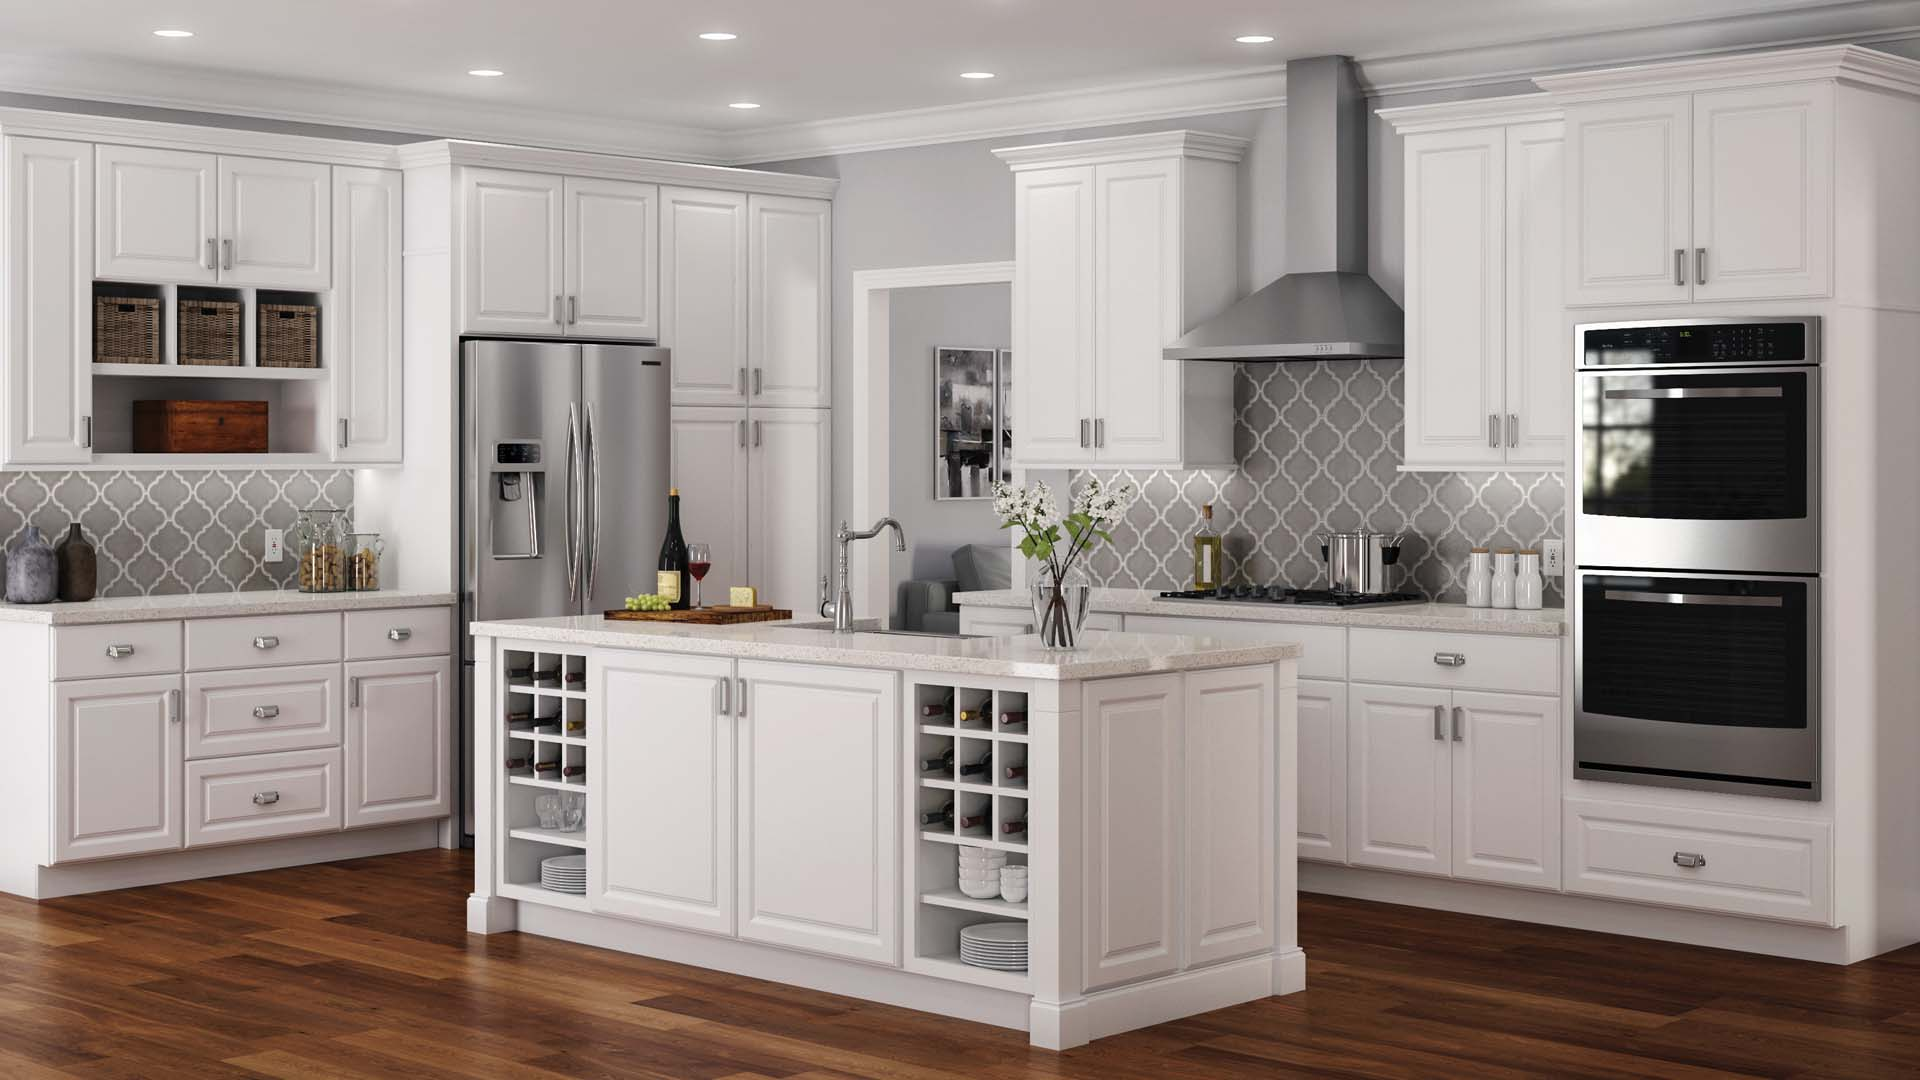 pictures of white kitchen cabinets with white appliances hampton base cabinets in white kitchen the home depot 9885